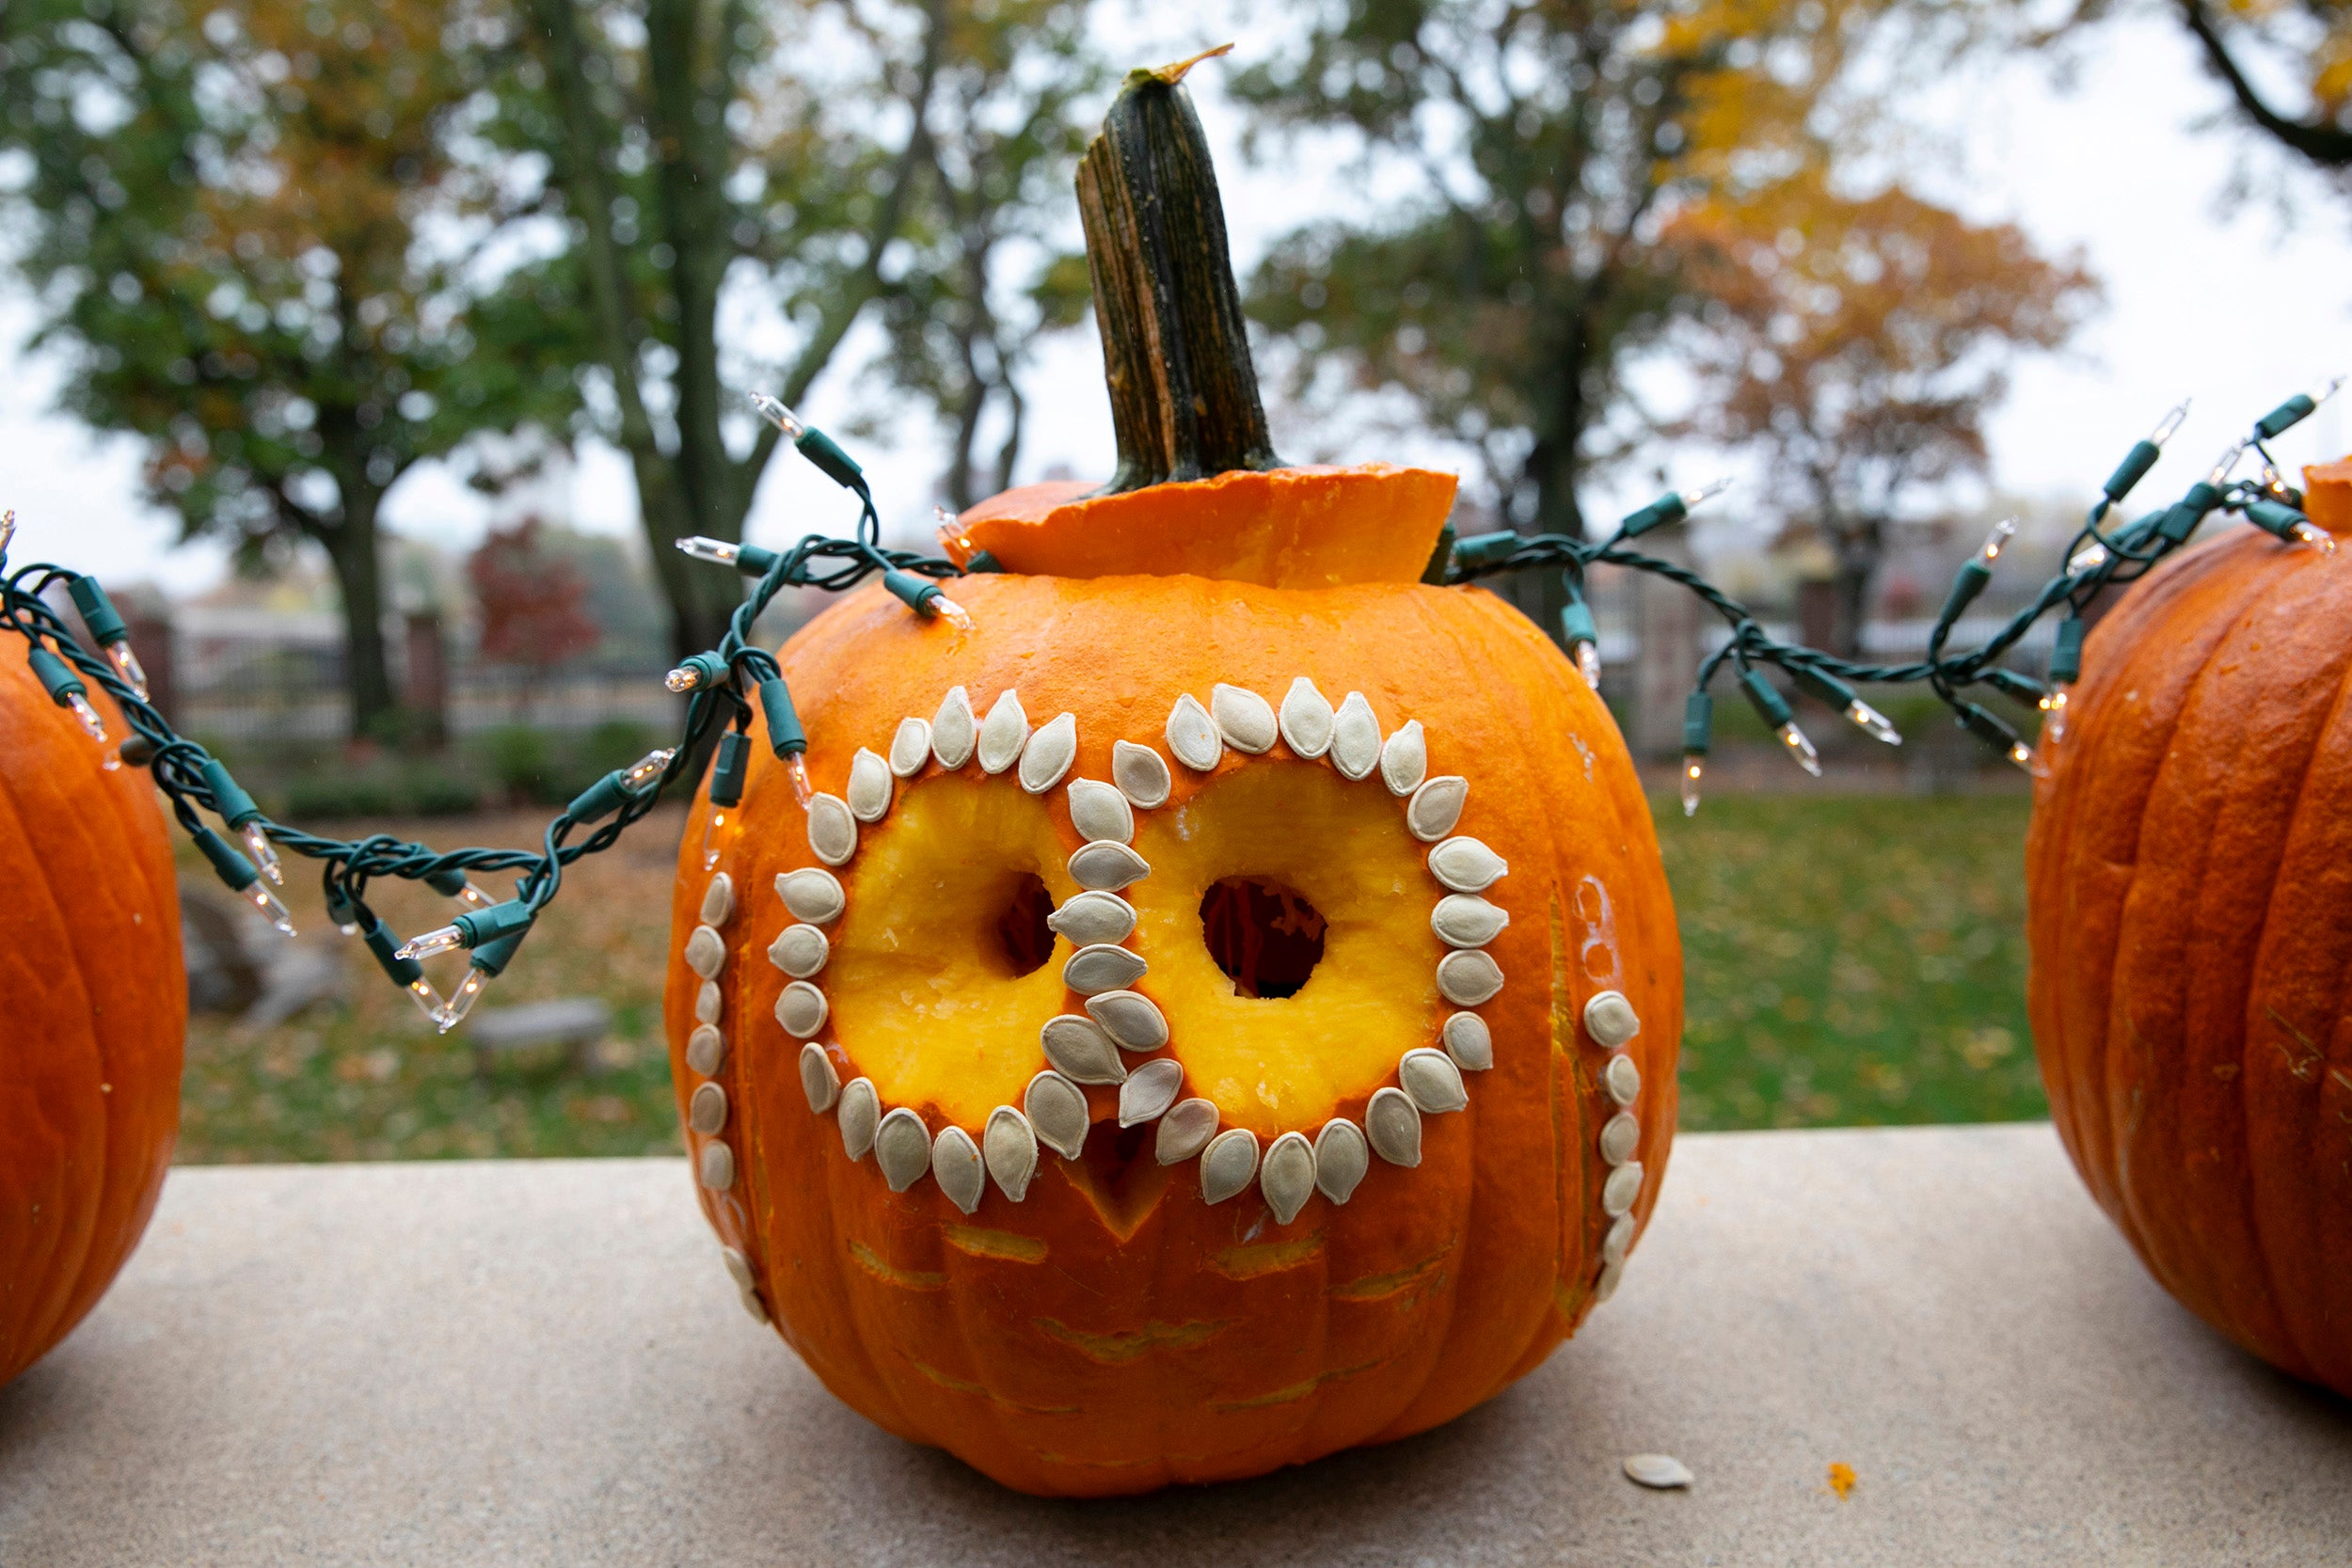 A pumpkin decorated with pumpkin seeds is on display outside of Winthrop House.